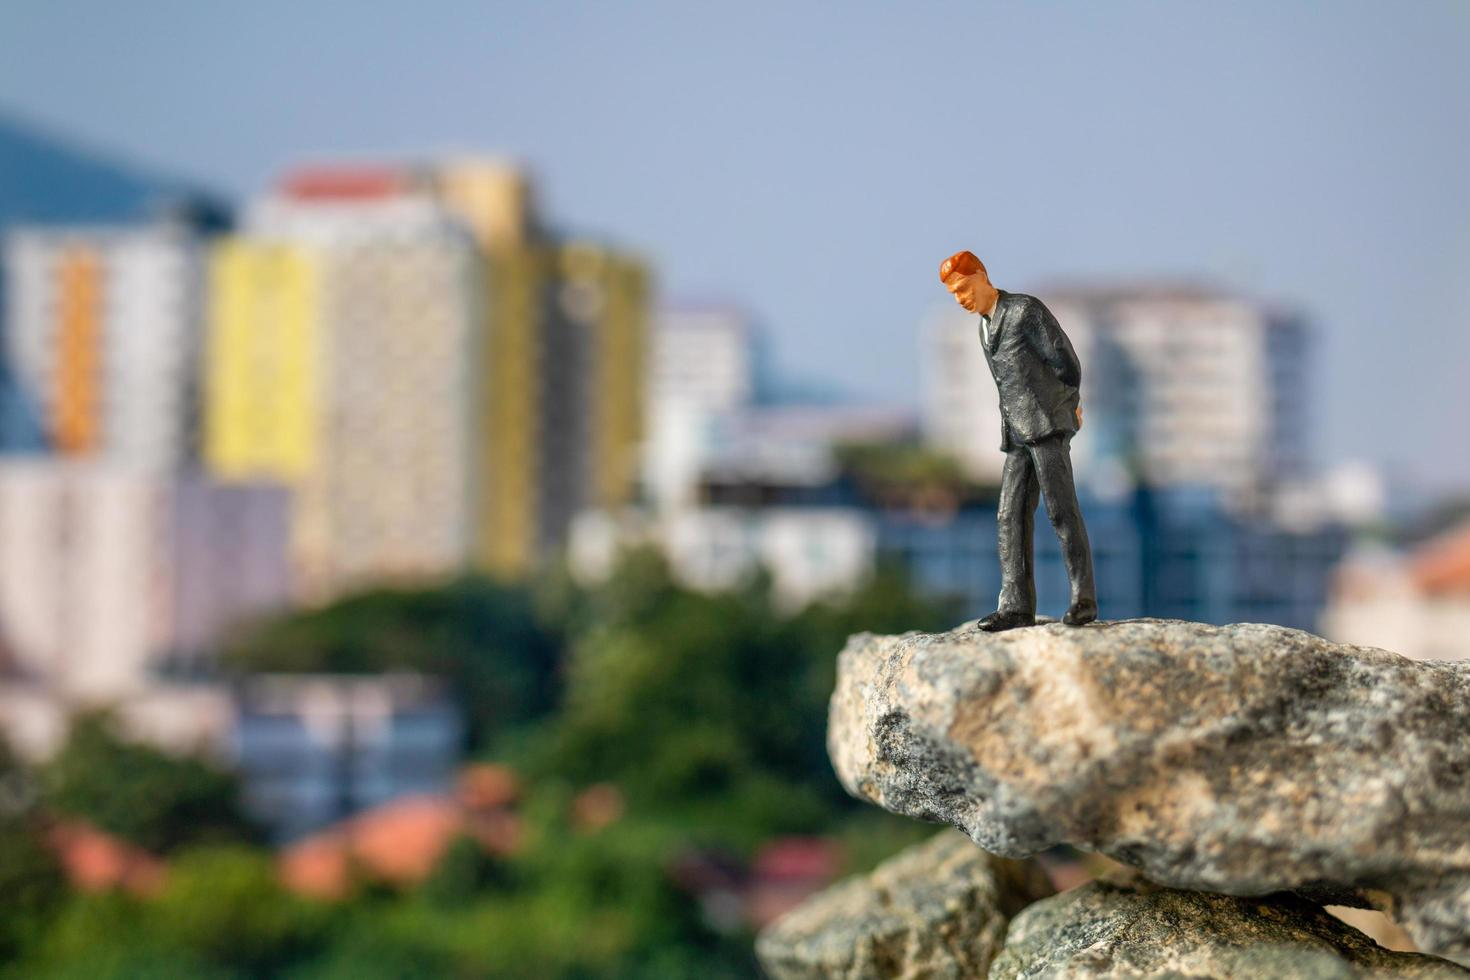 Miniature businessman standing on a rock with buildings in the background photo